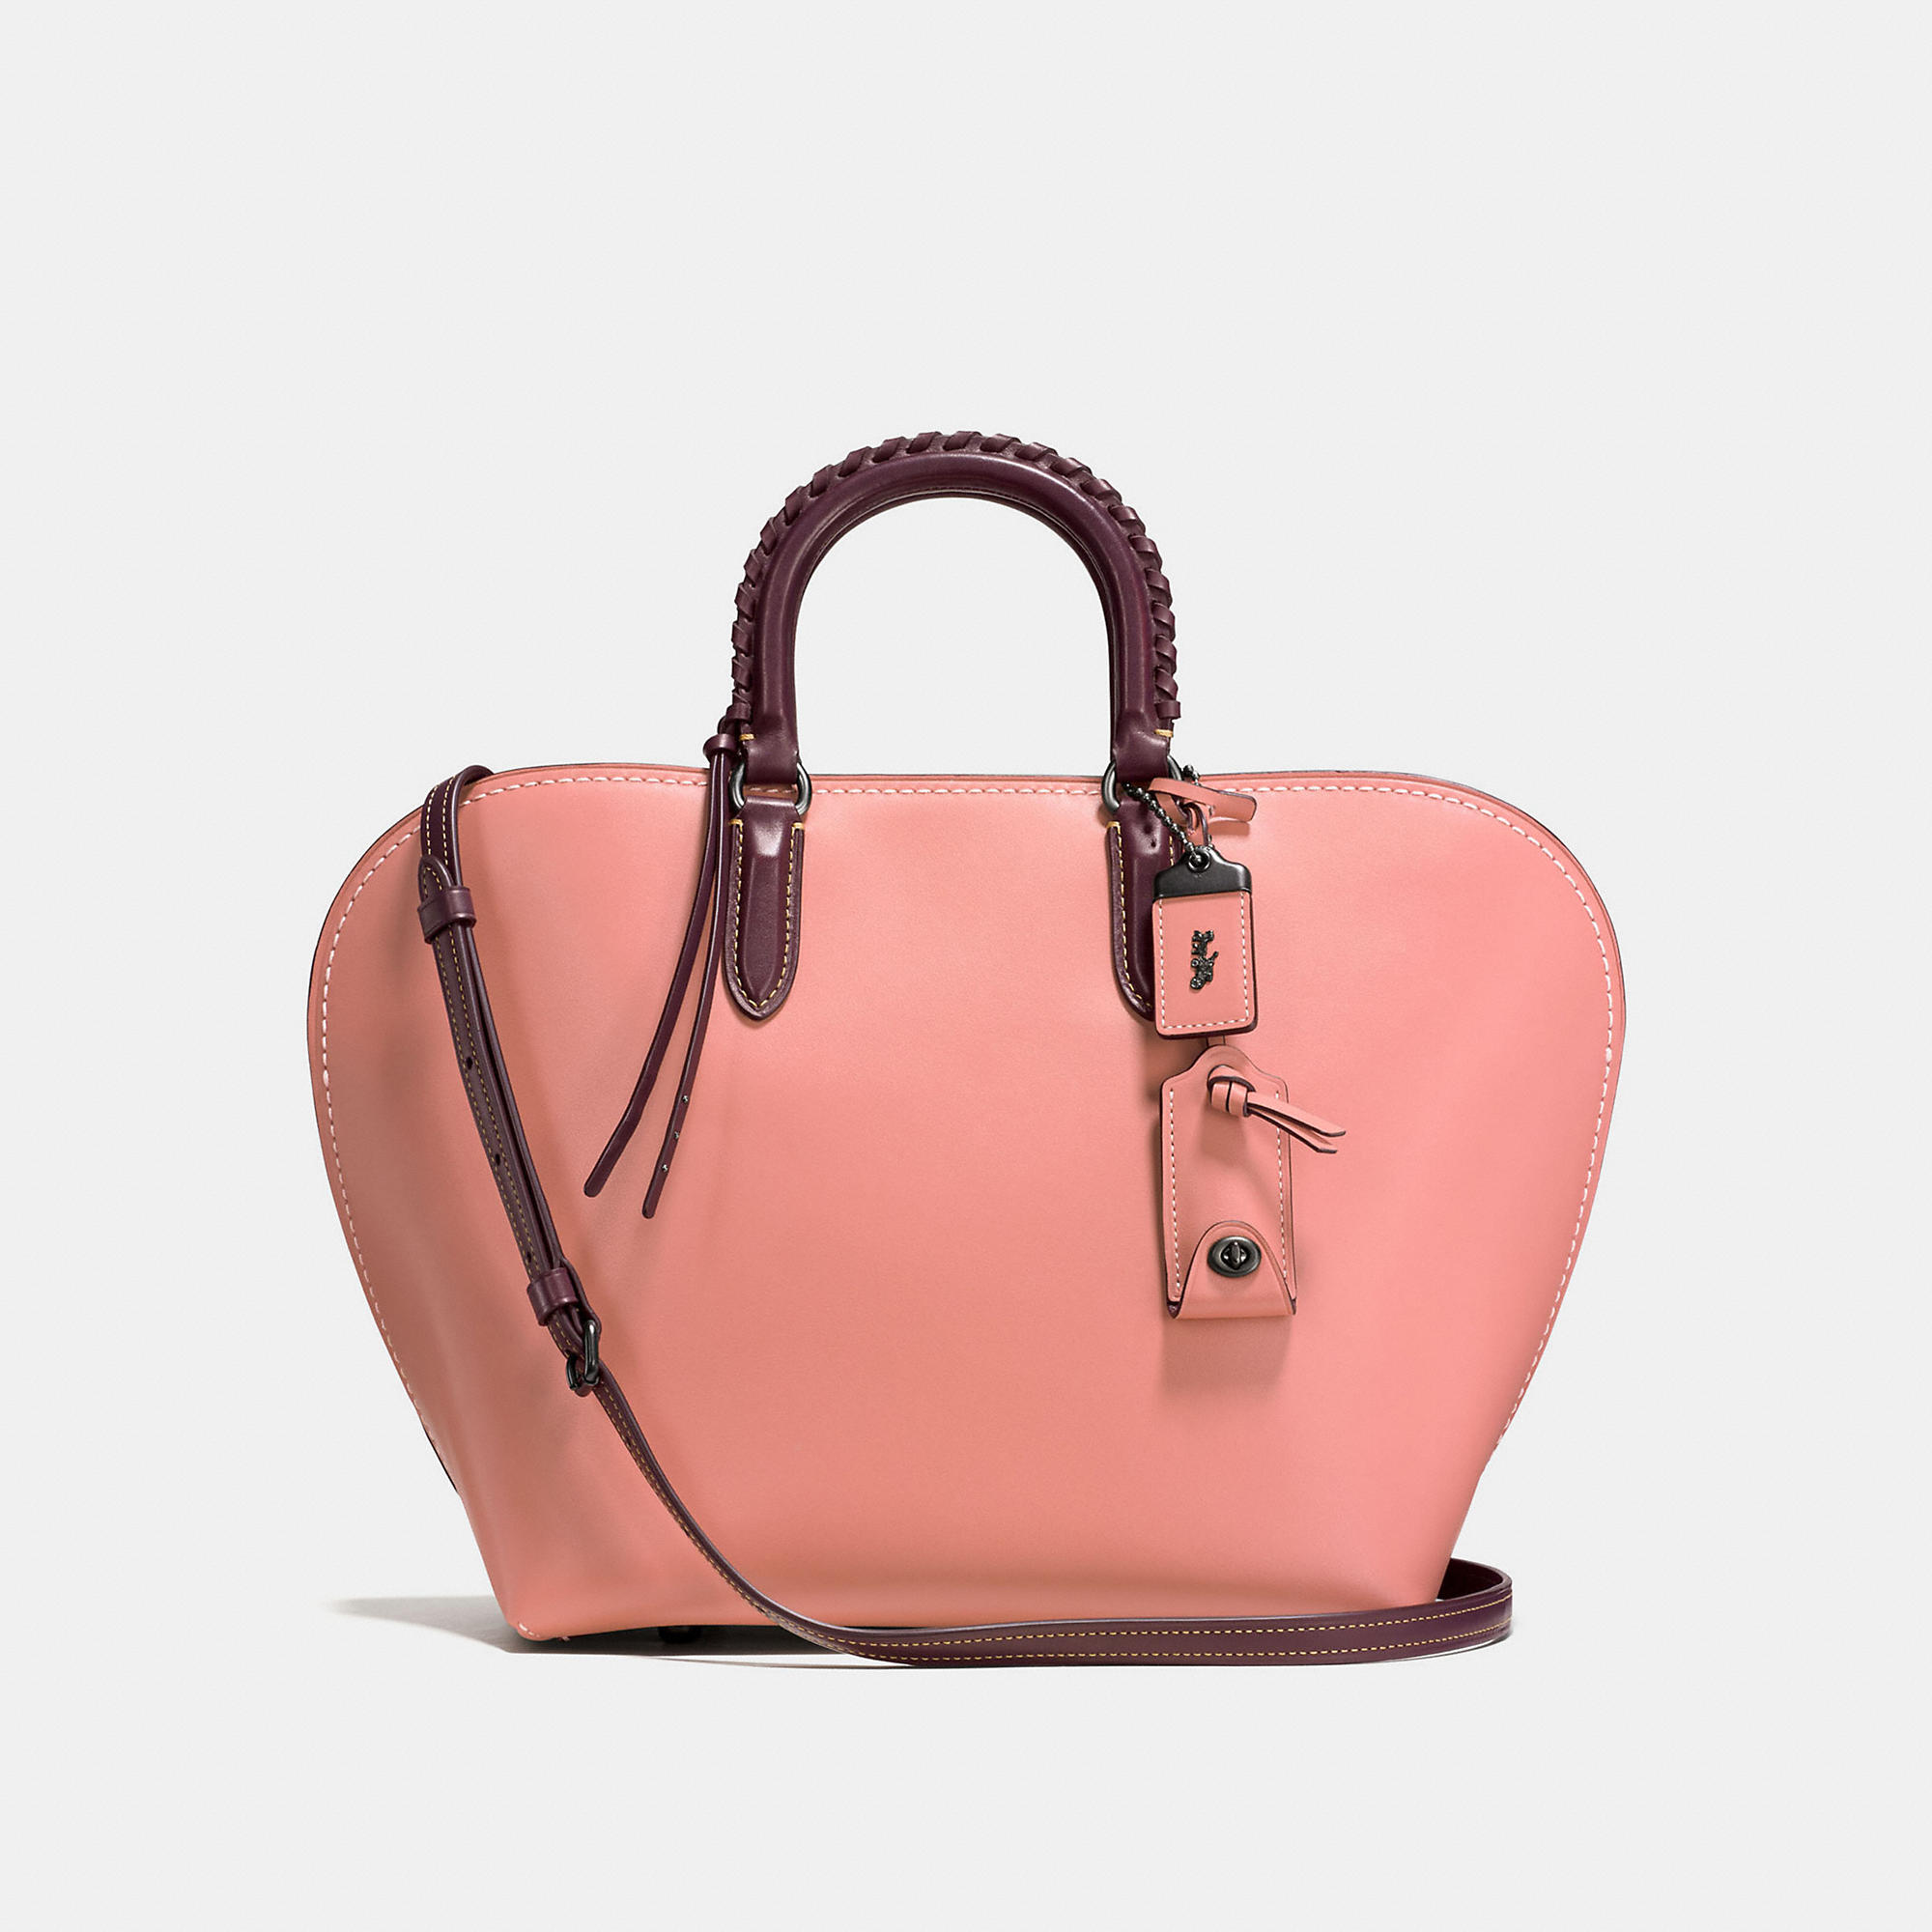 Coach Dakotah Satchel With Embellished Handle In Glovetanned Leather